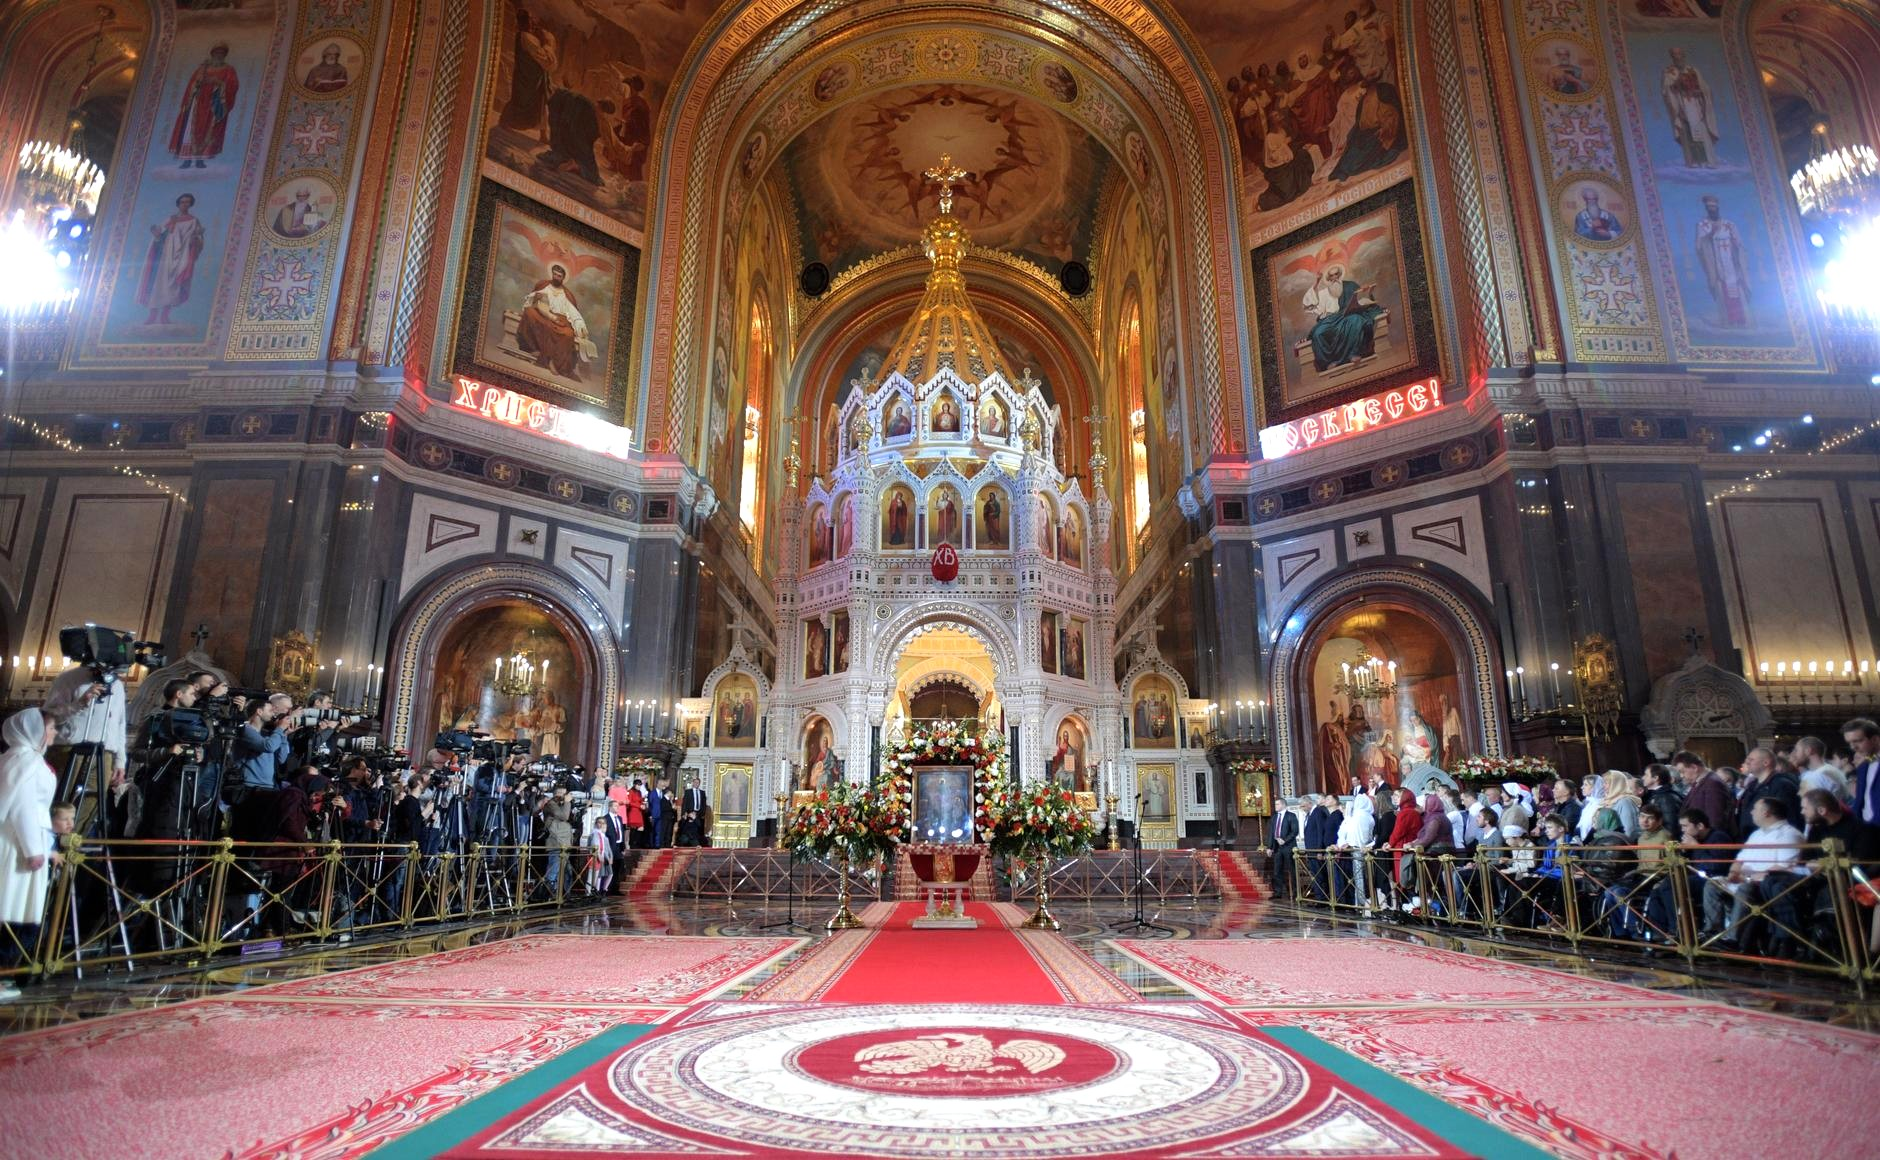 In Russia, the Easter celebration centered around Moscow's Christ the Savior Cathedral.